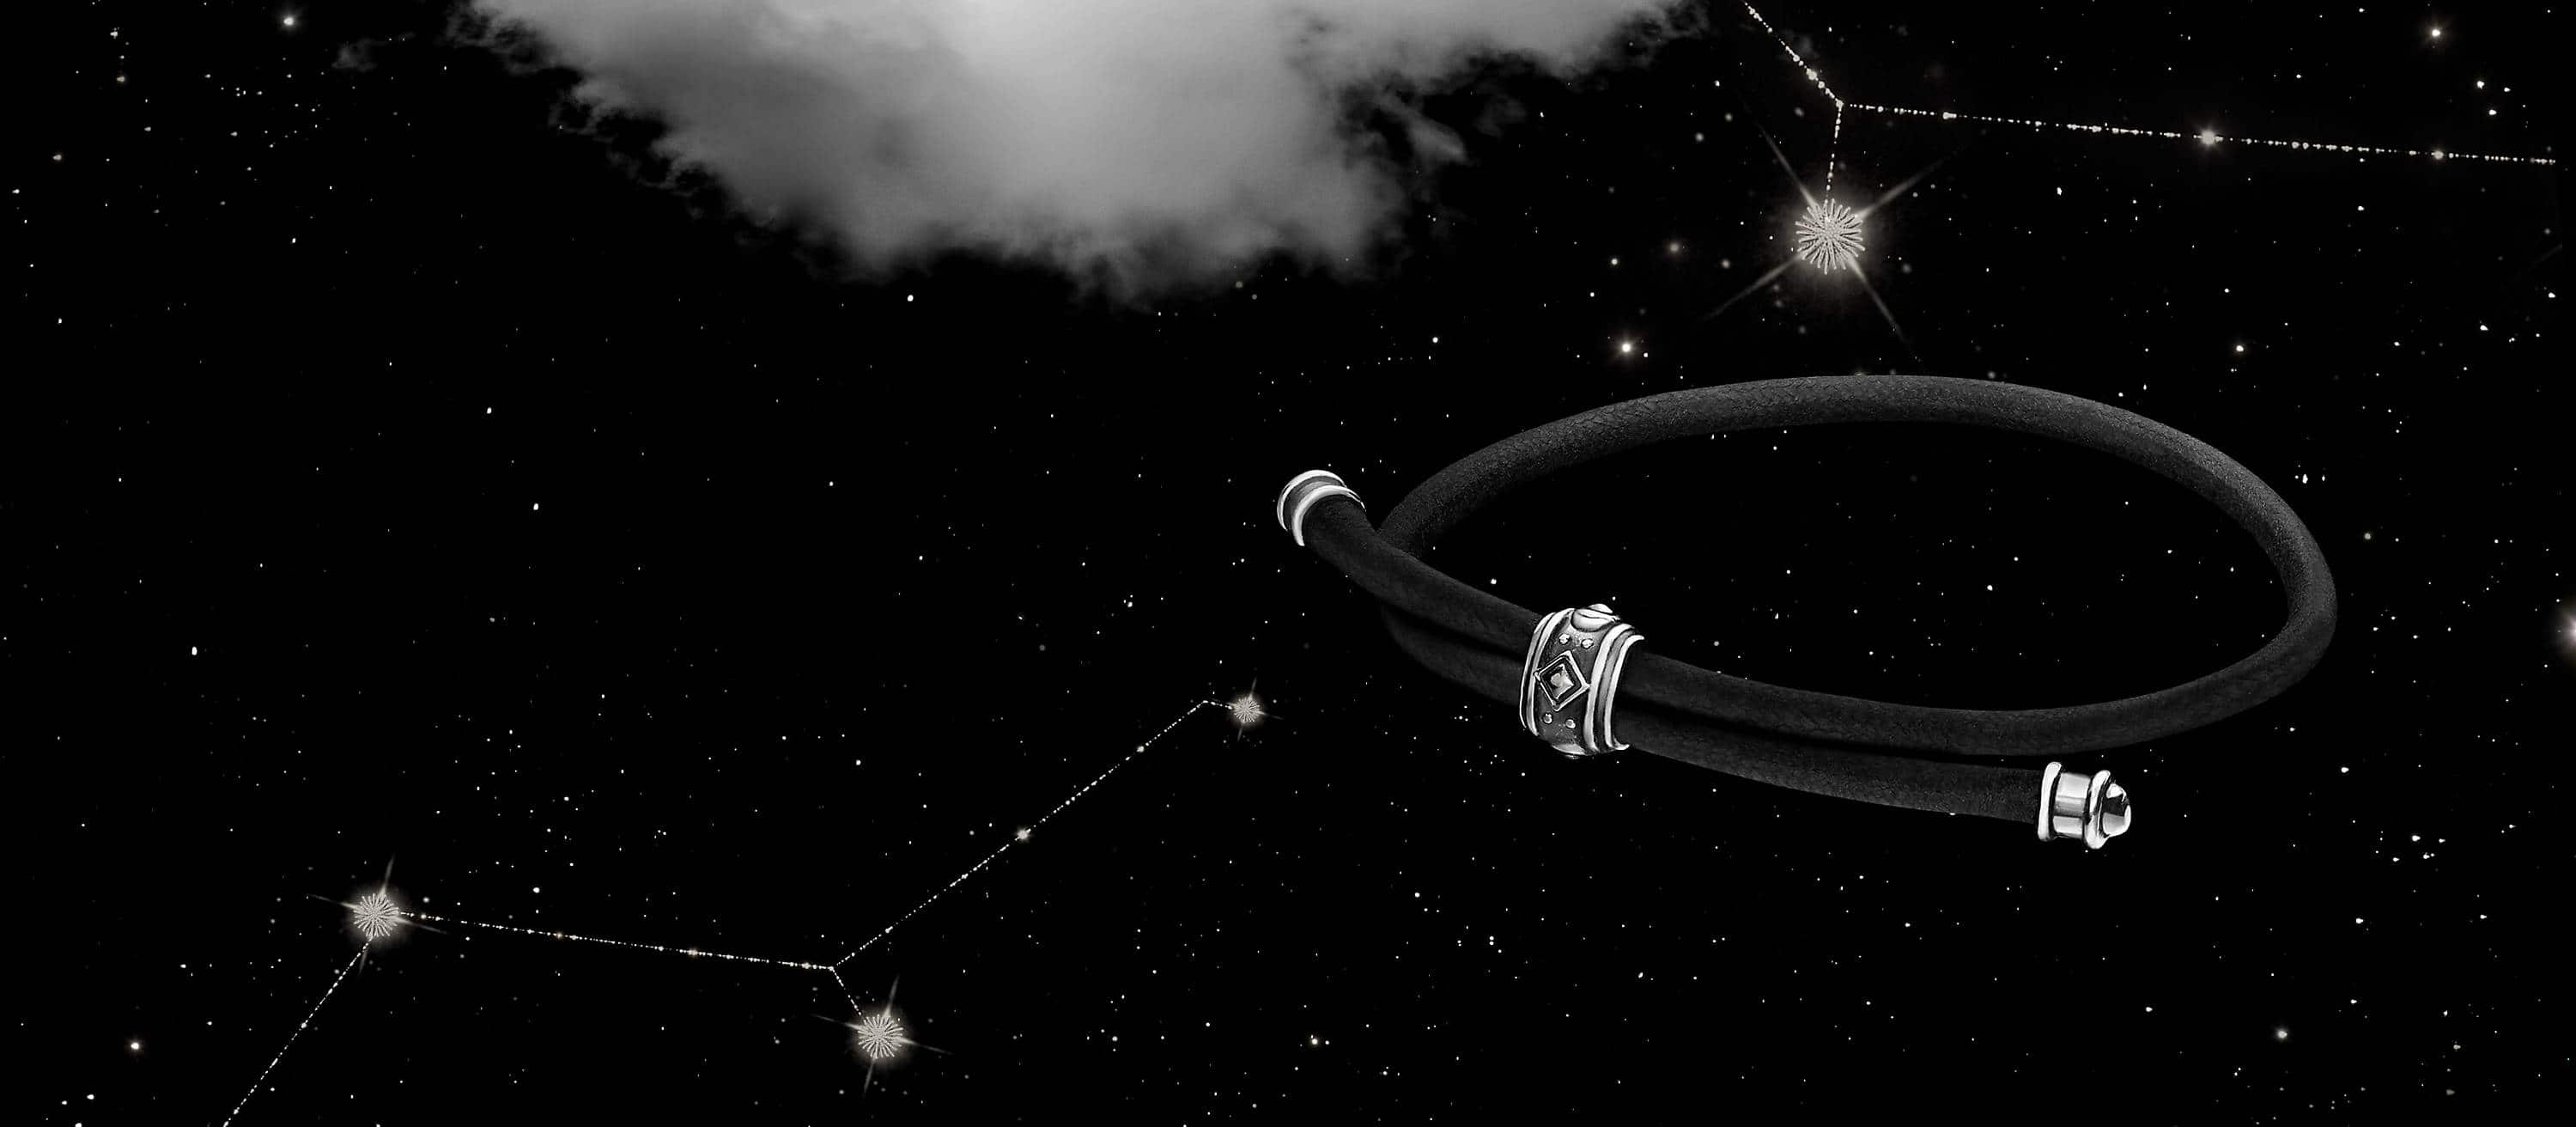 A color photo shows a renaissance corded bracelet on a white cloud in a starry night sky.